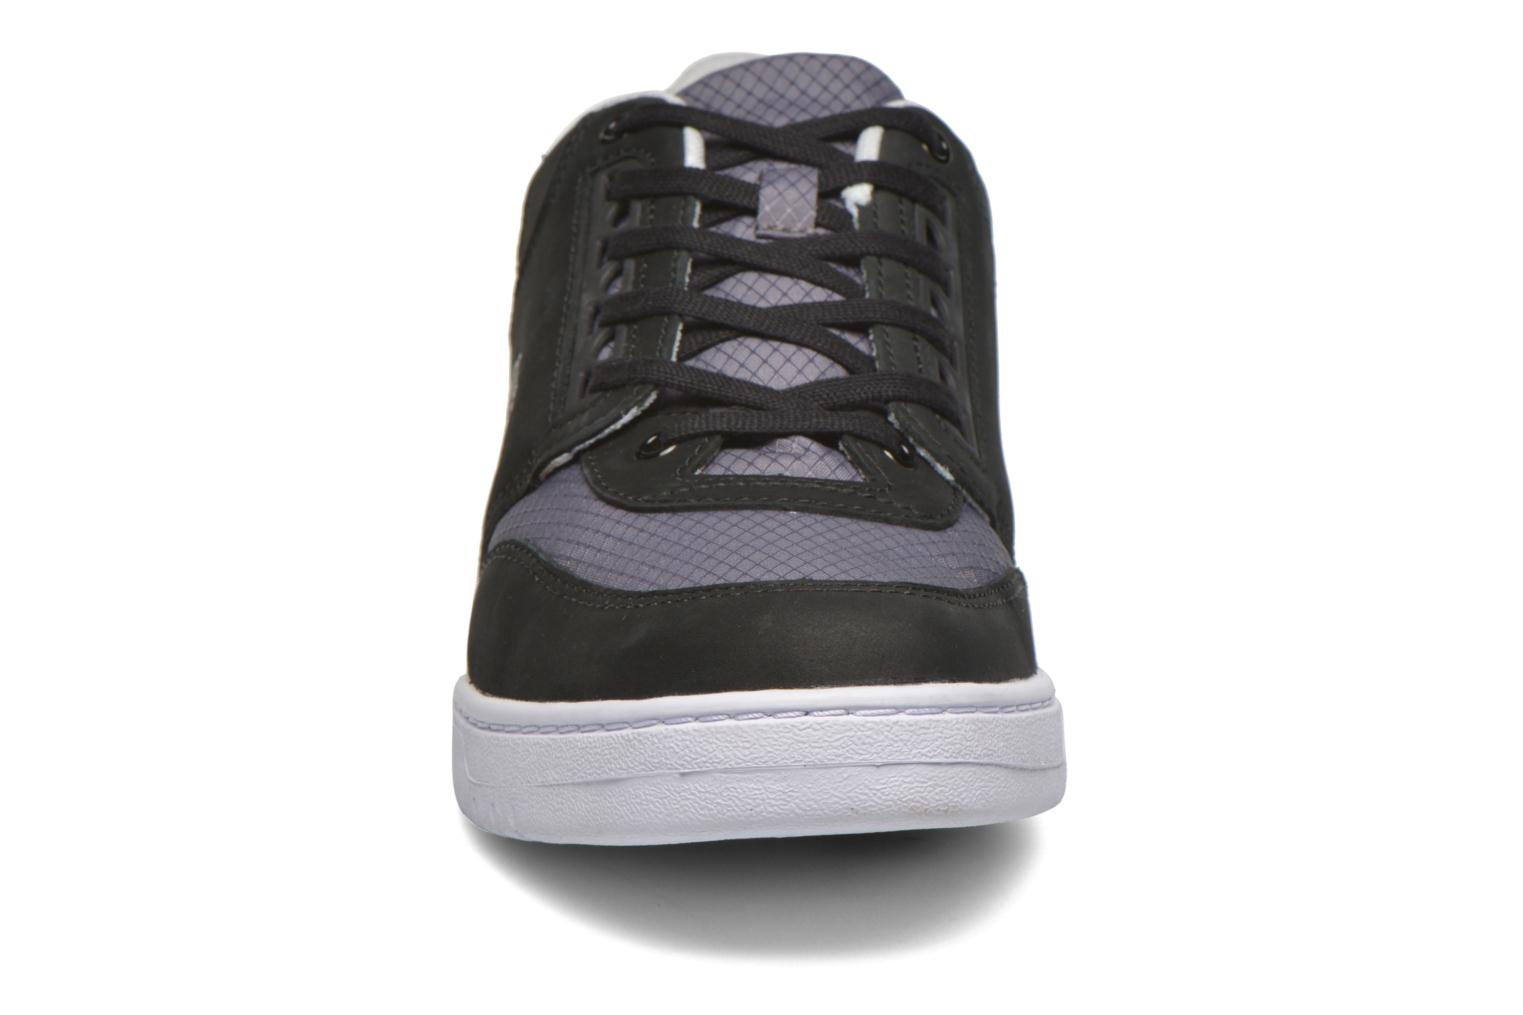 Indiana 316 1 C Black/dark grey